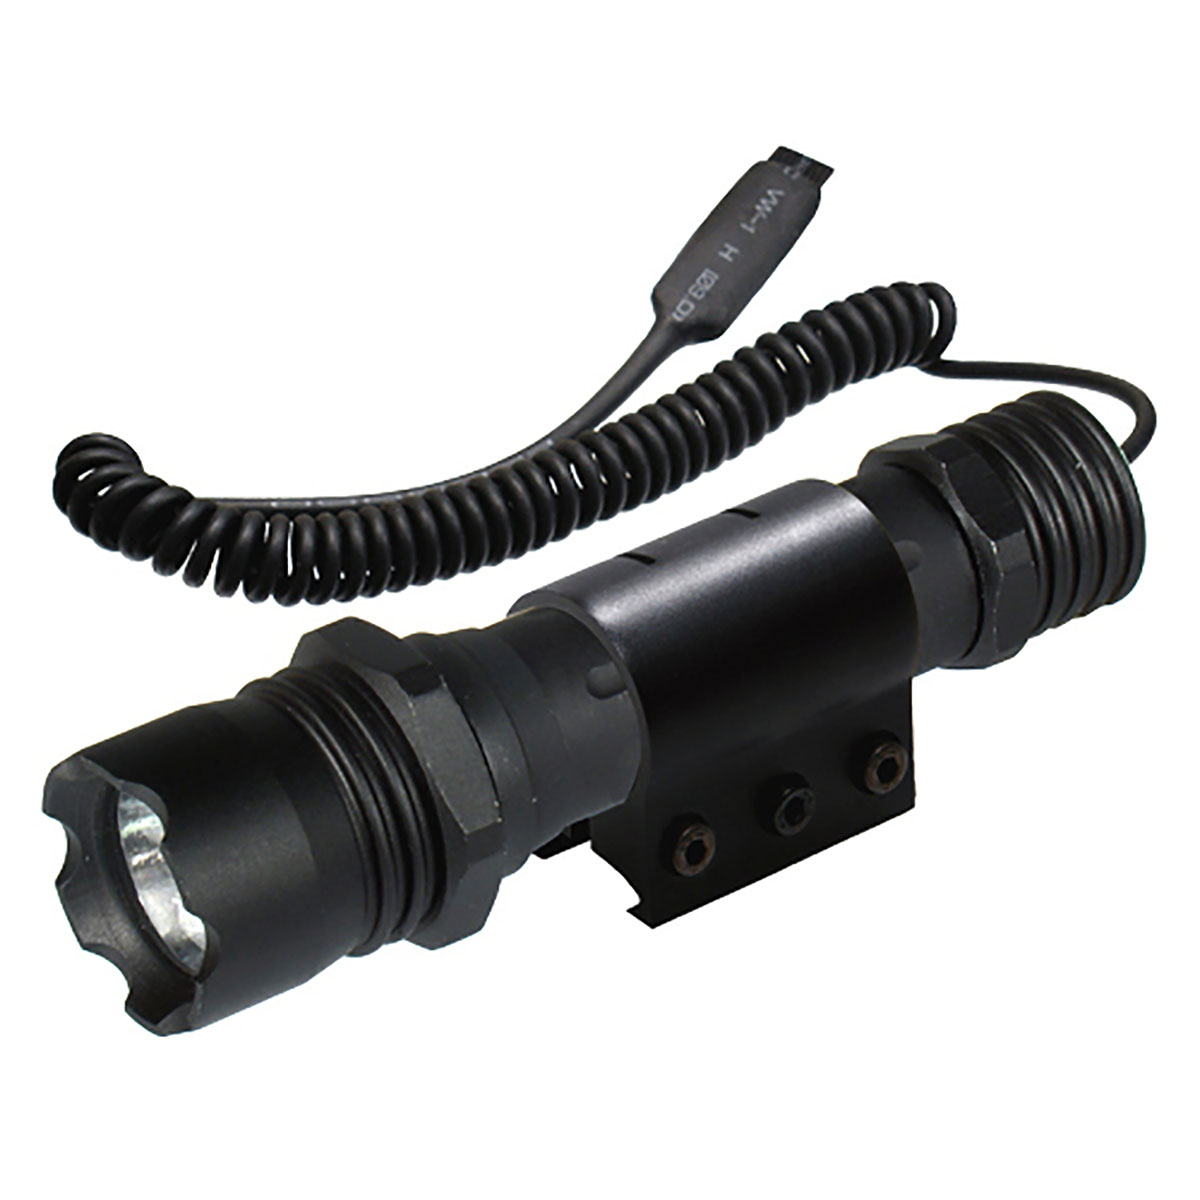 Leapers  Combat 26Mm Irb Led Flashlight W/Weaver Ring - LT-EL268